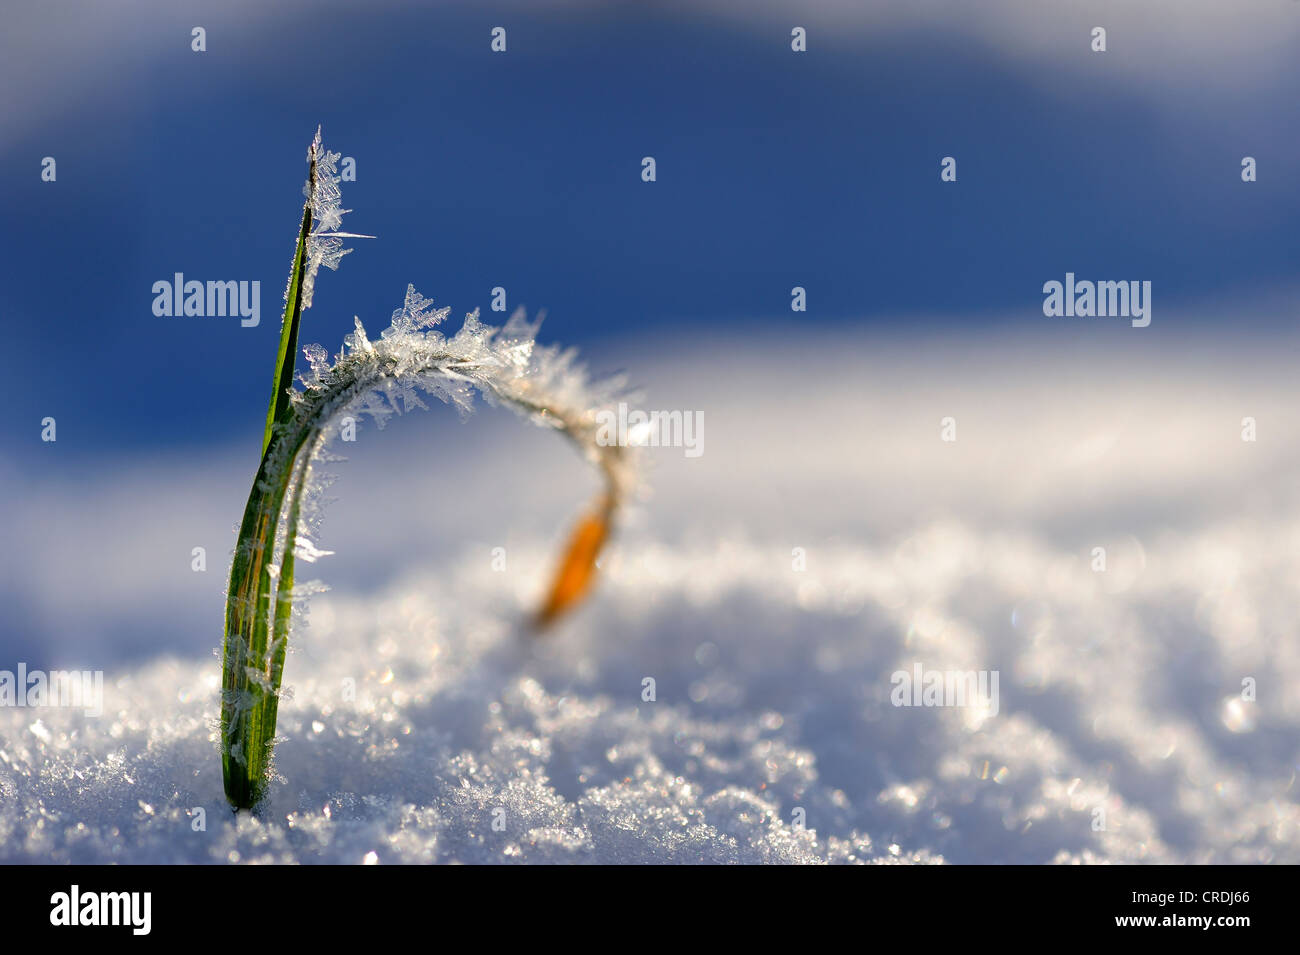 Blade of grass with snow crystals - Stock Image